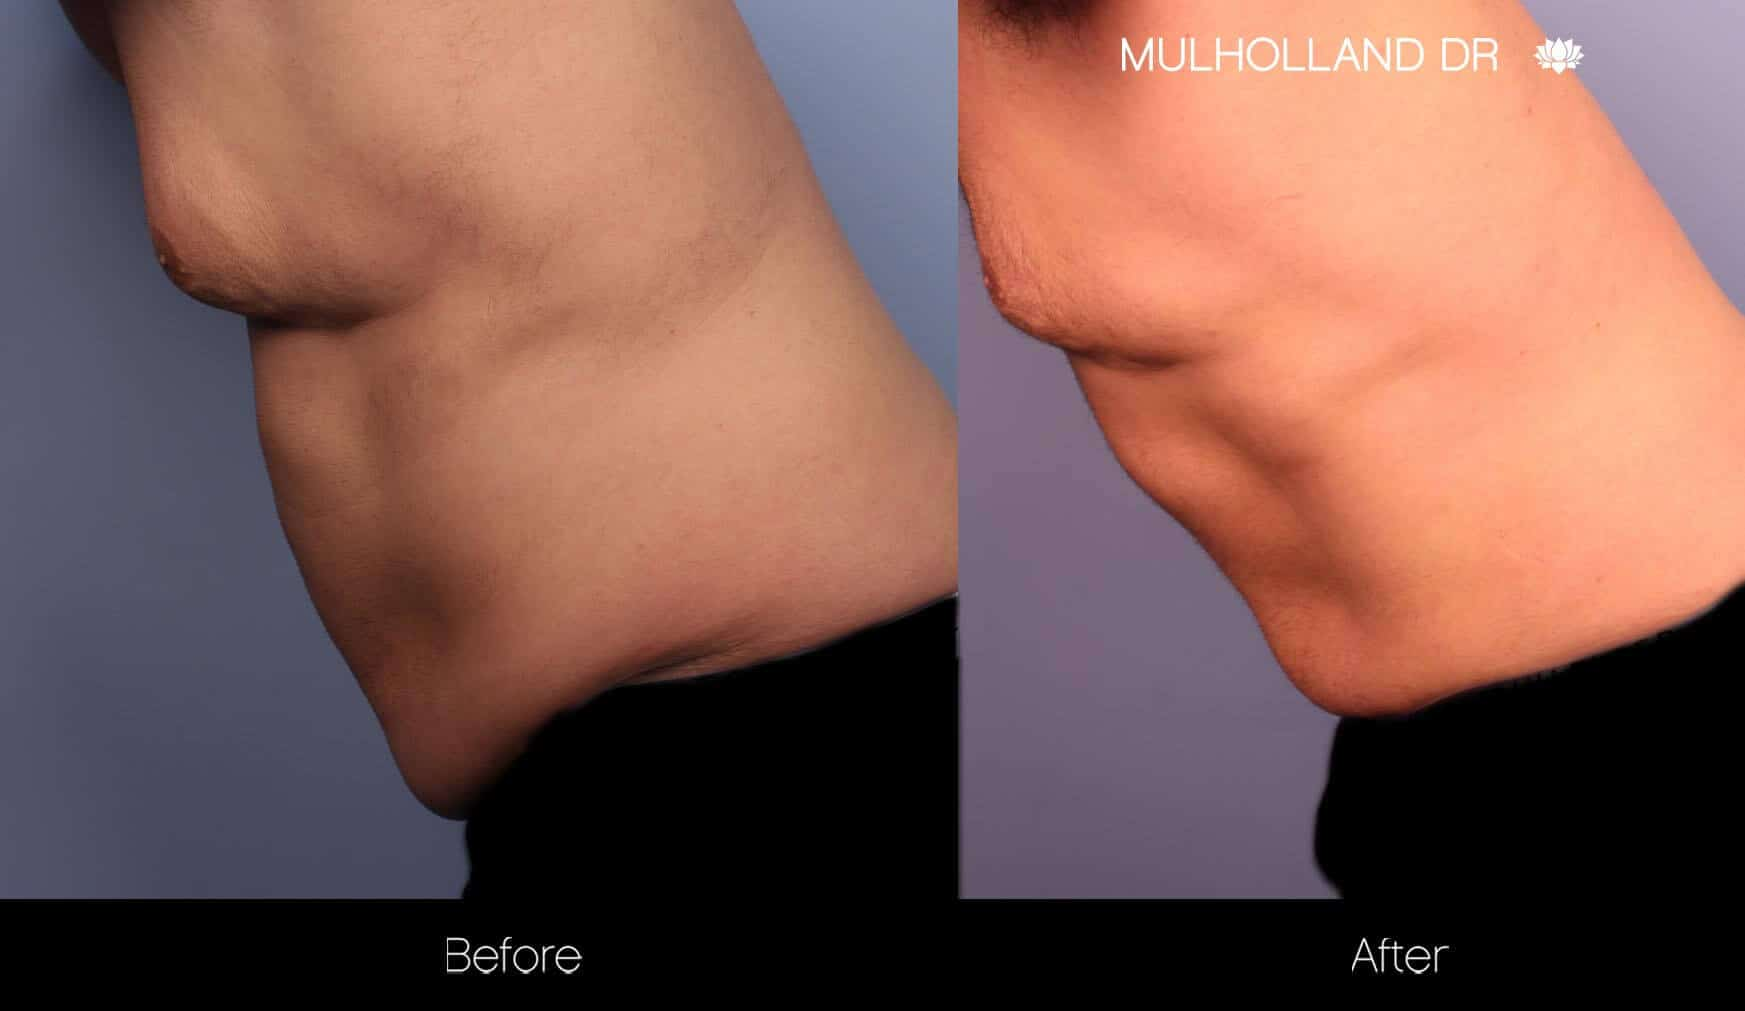 Abdomen Liposuction - Before and After Gallery - Patient Photo 12